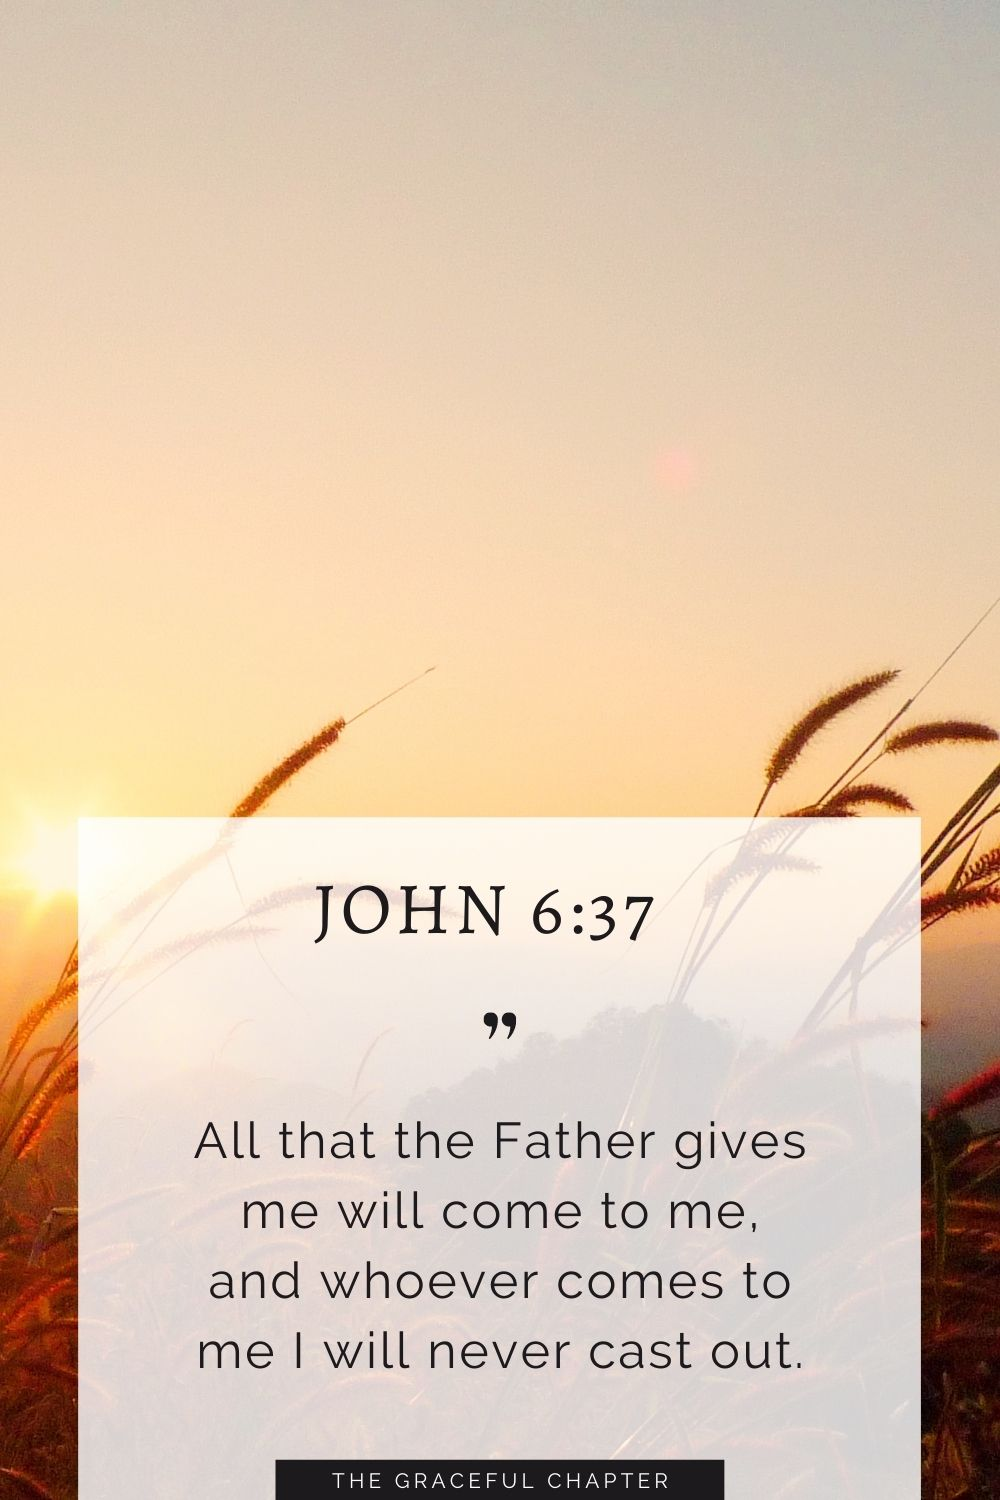 All that the Father gives me will come to me, and whoever comes to me I will never cast out. John 6:37